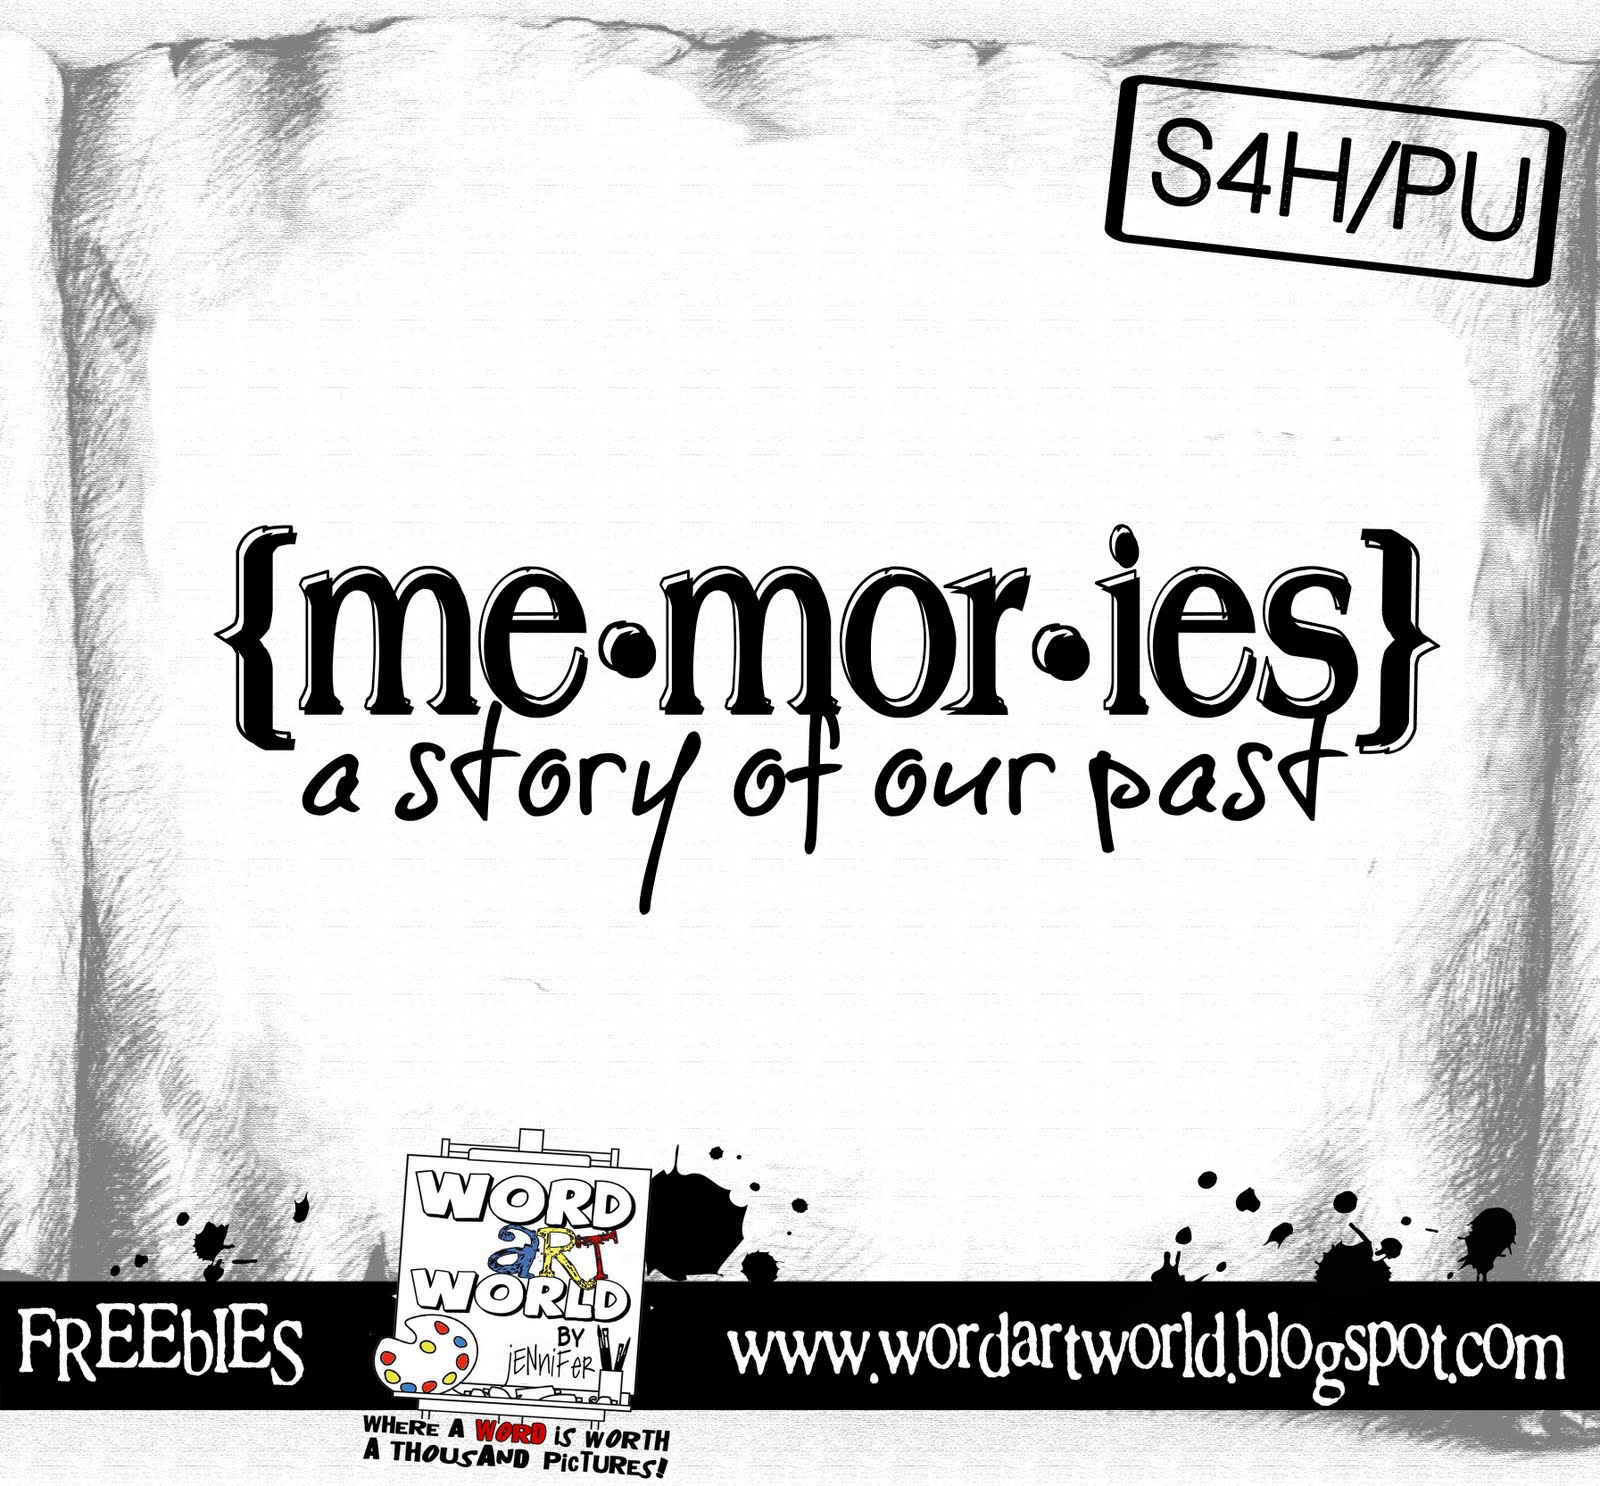 Word Art World: Memories: a Story of our Past